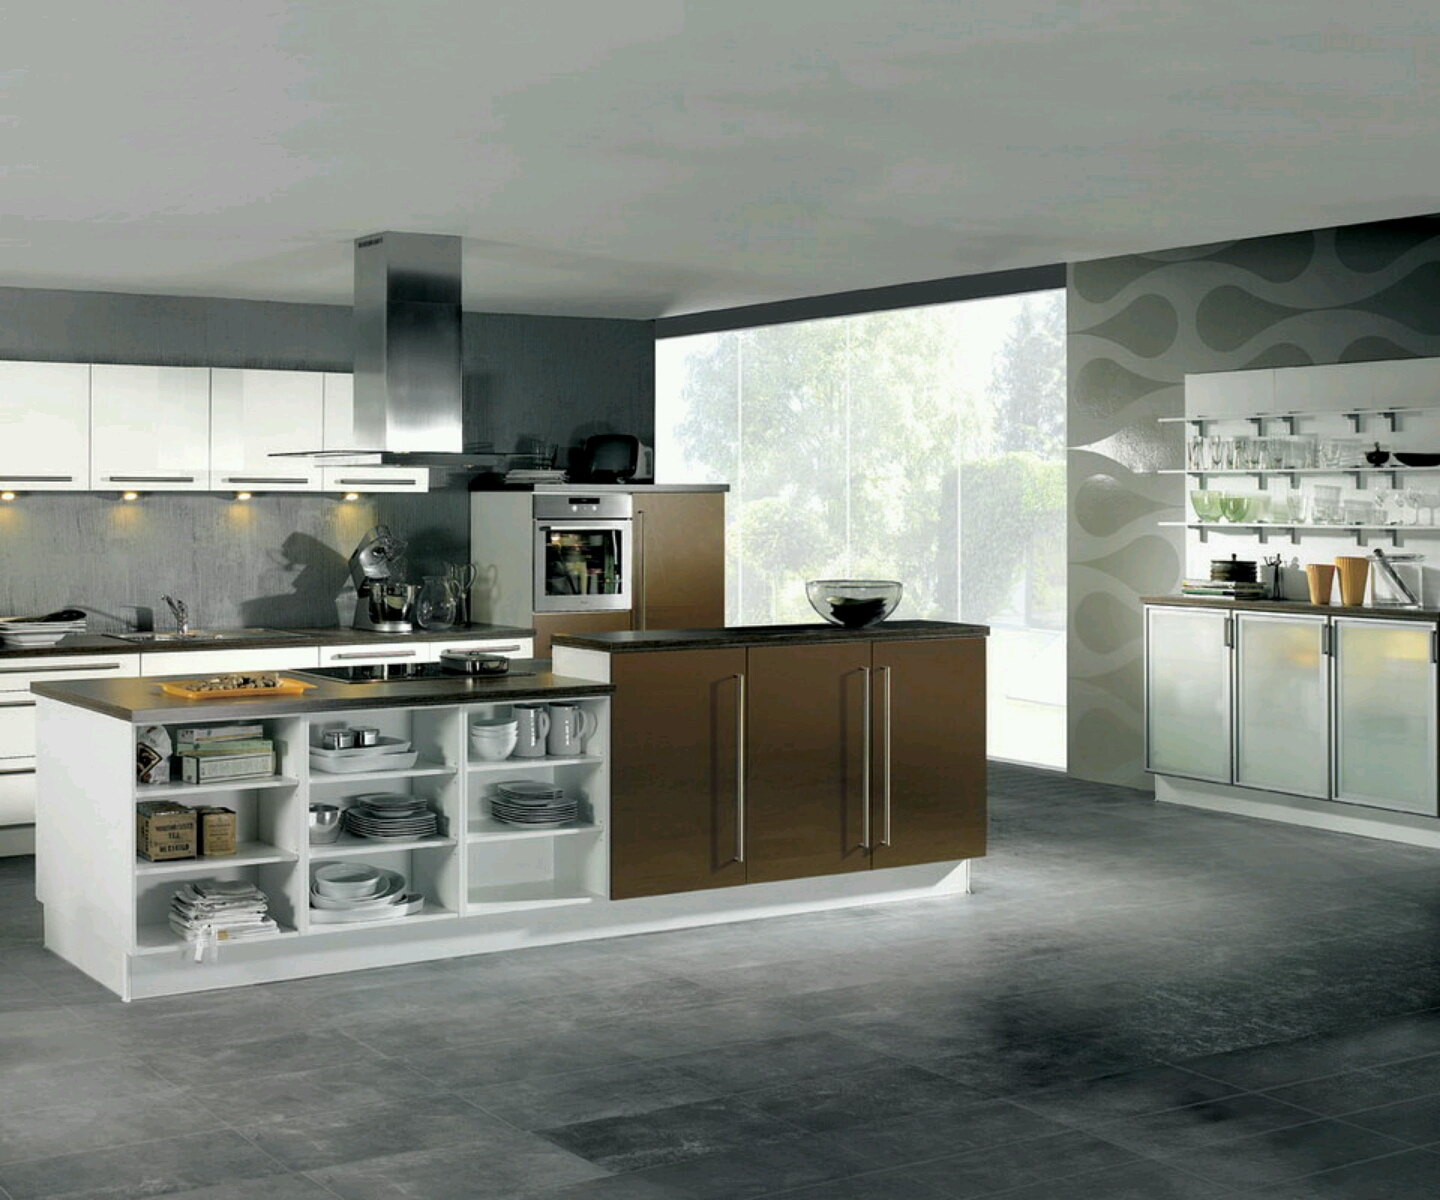 New home designs latest ultra modern kitchen designs ideas for Homey kitchen designs